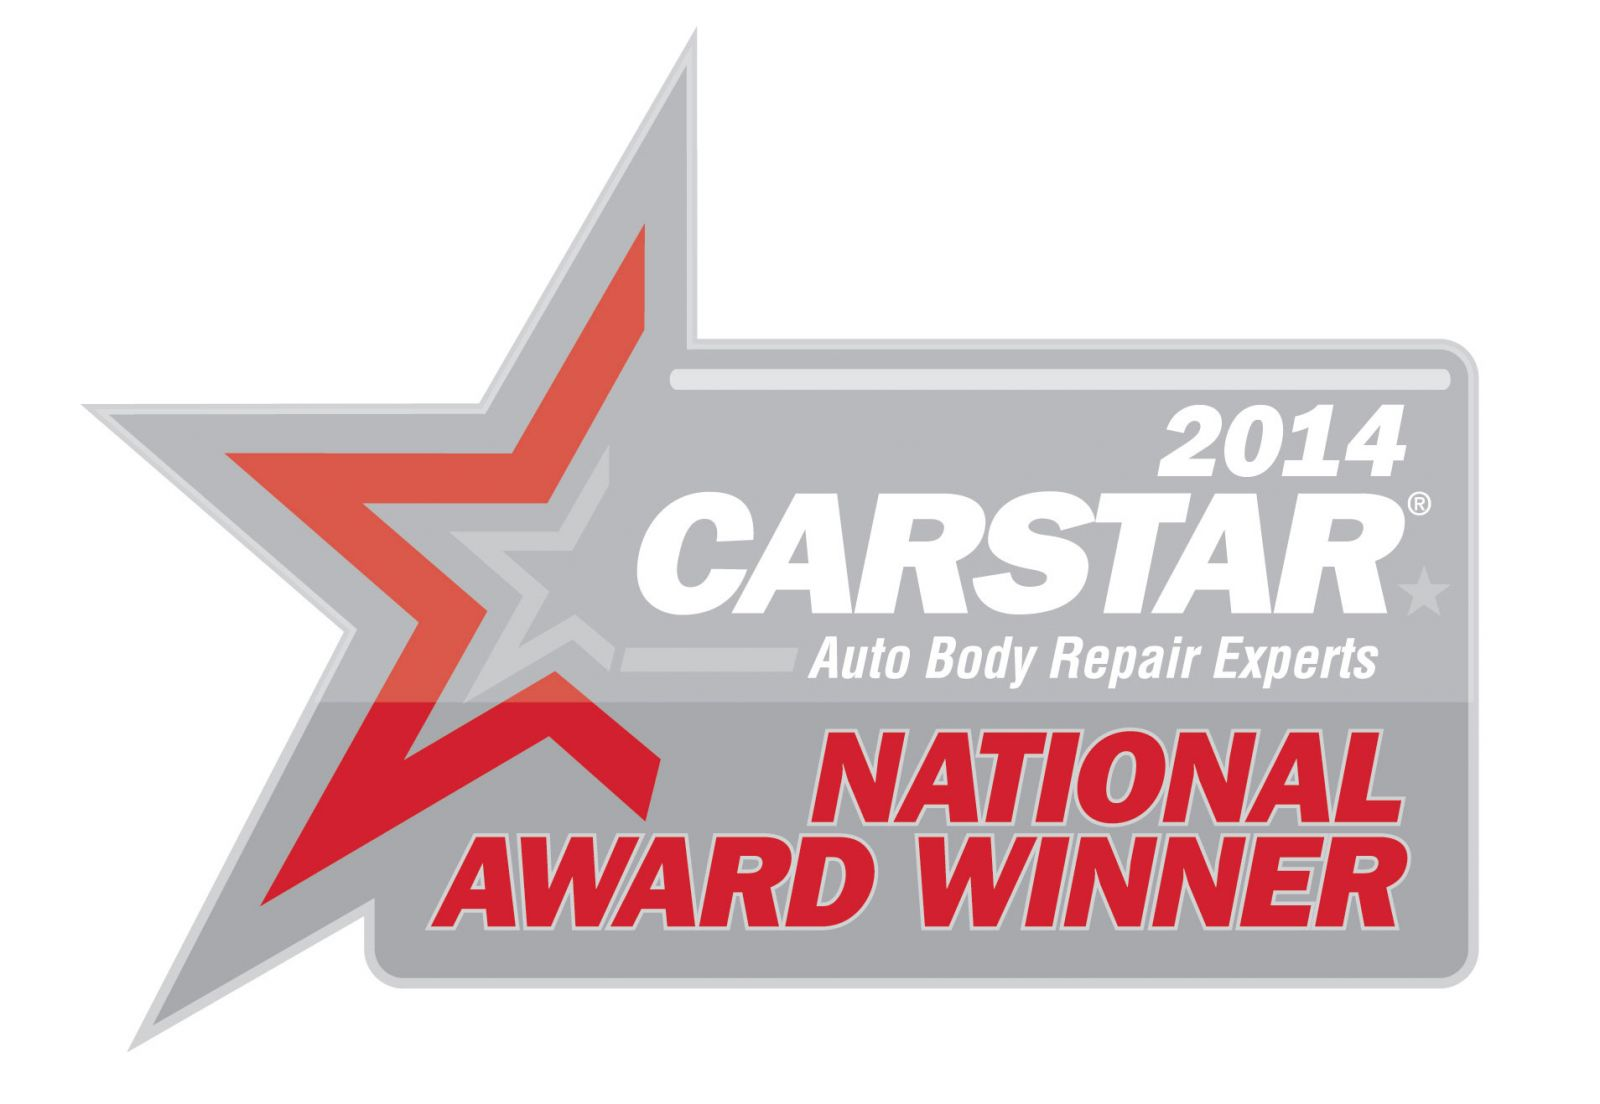 Superior CARSTAR: 2014 National Award Winner